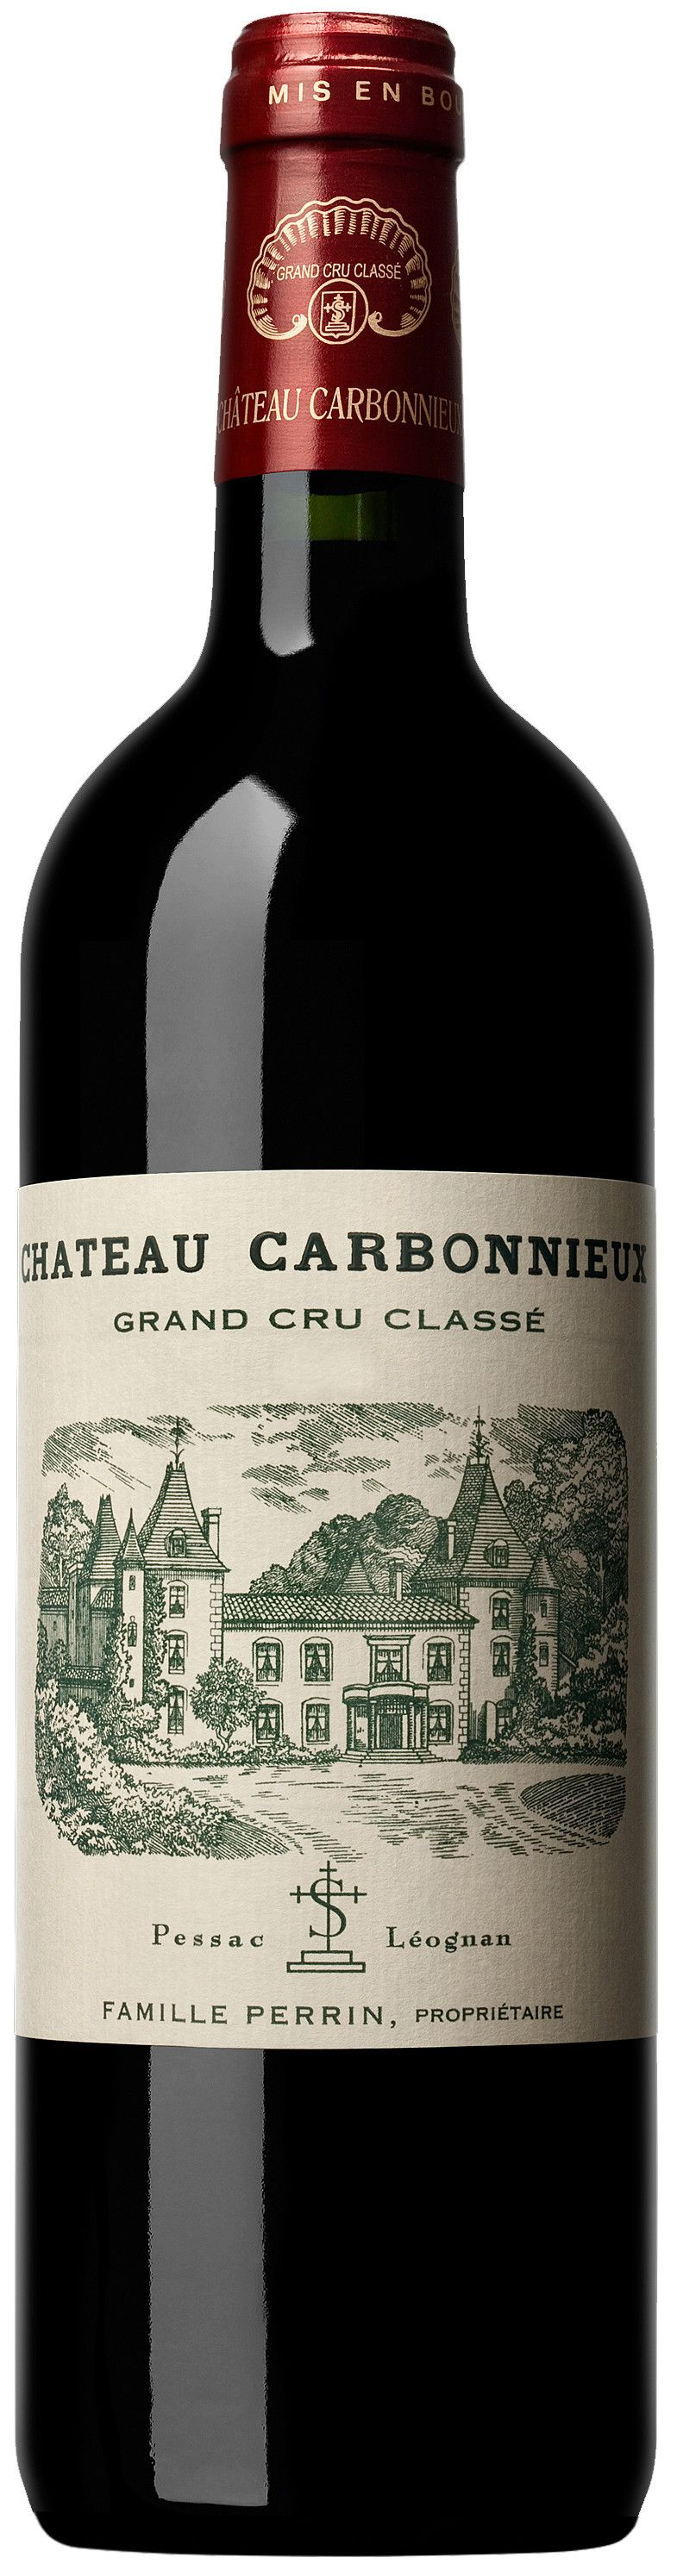 Chateau Carbonnieux, Grand Cru Classe Rouge, 2005